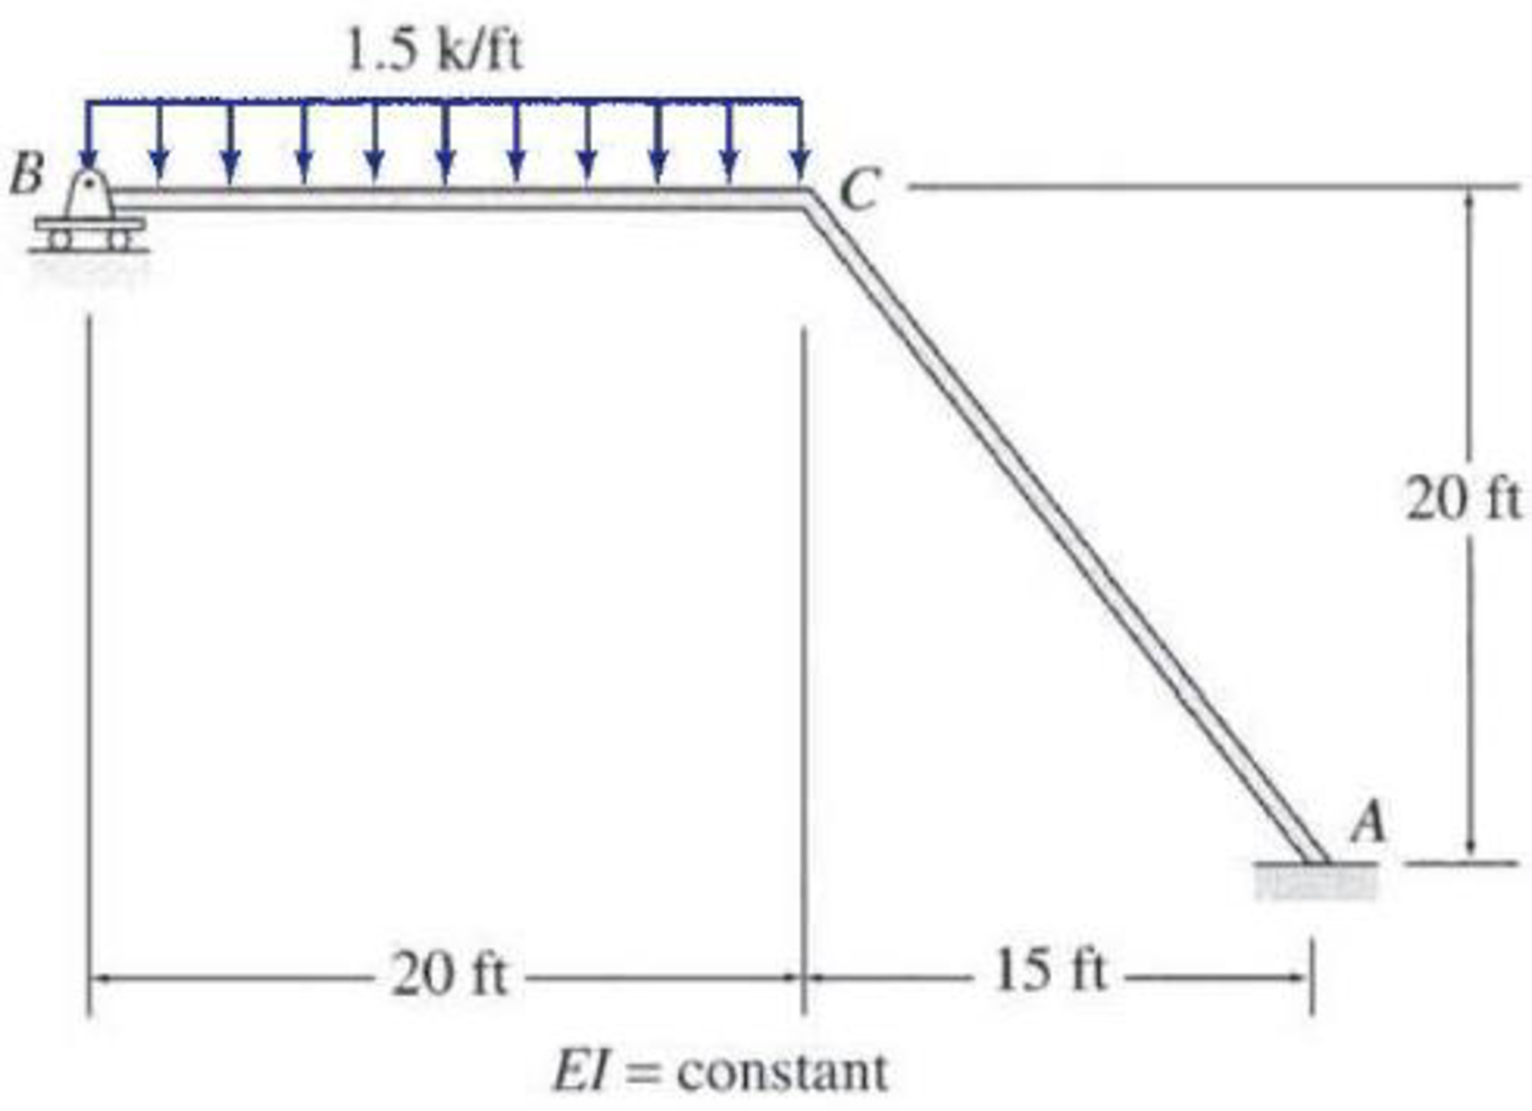 Chapter 13, Problem 24P, 13.13 through 13.25 Determine the reactions and draw the shear and bending moment diagrams for the